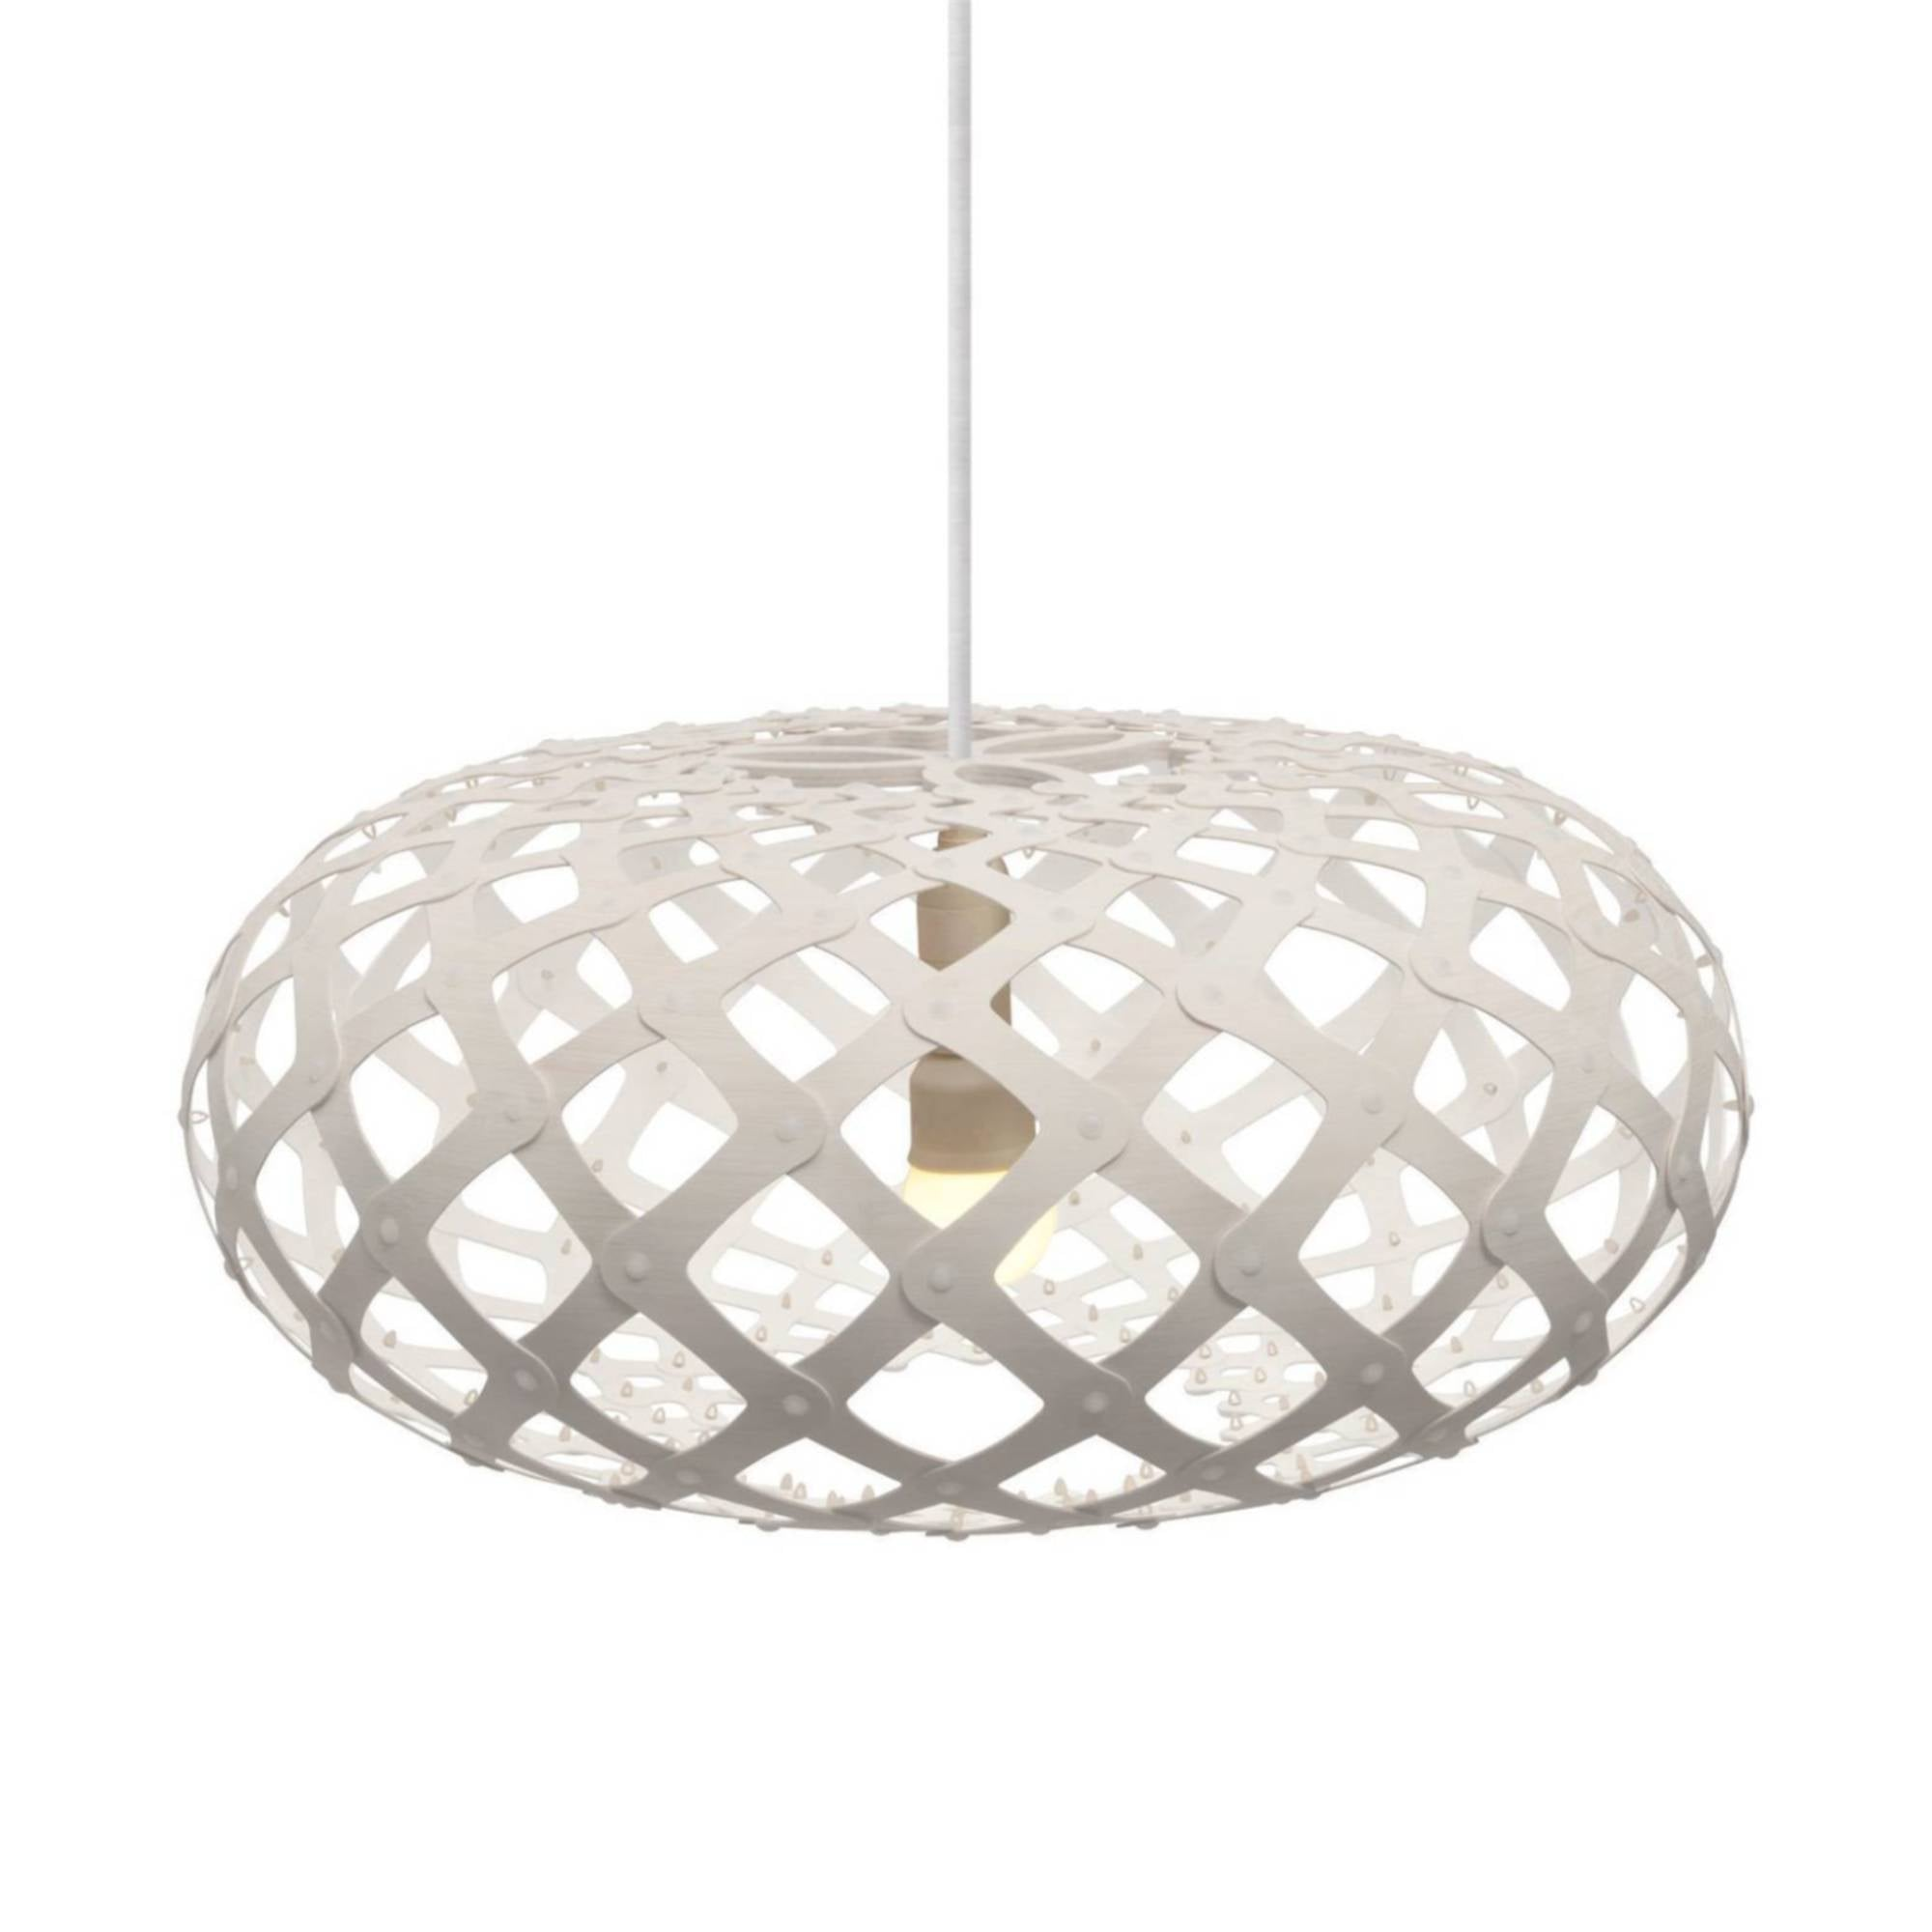 Kina Pendant Light: 800 + White Two Sides